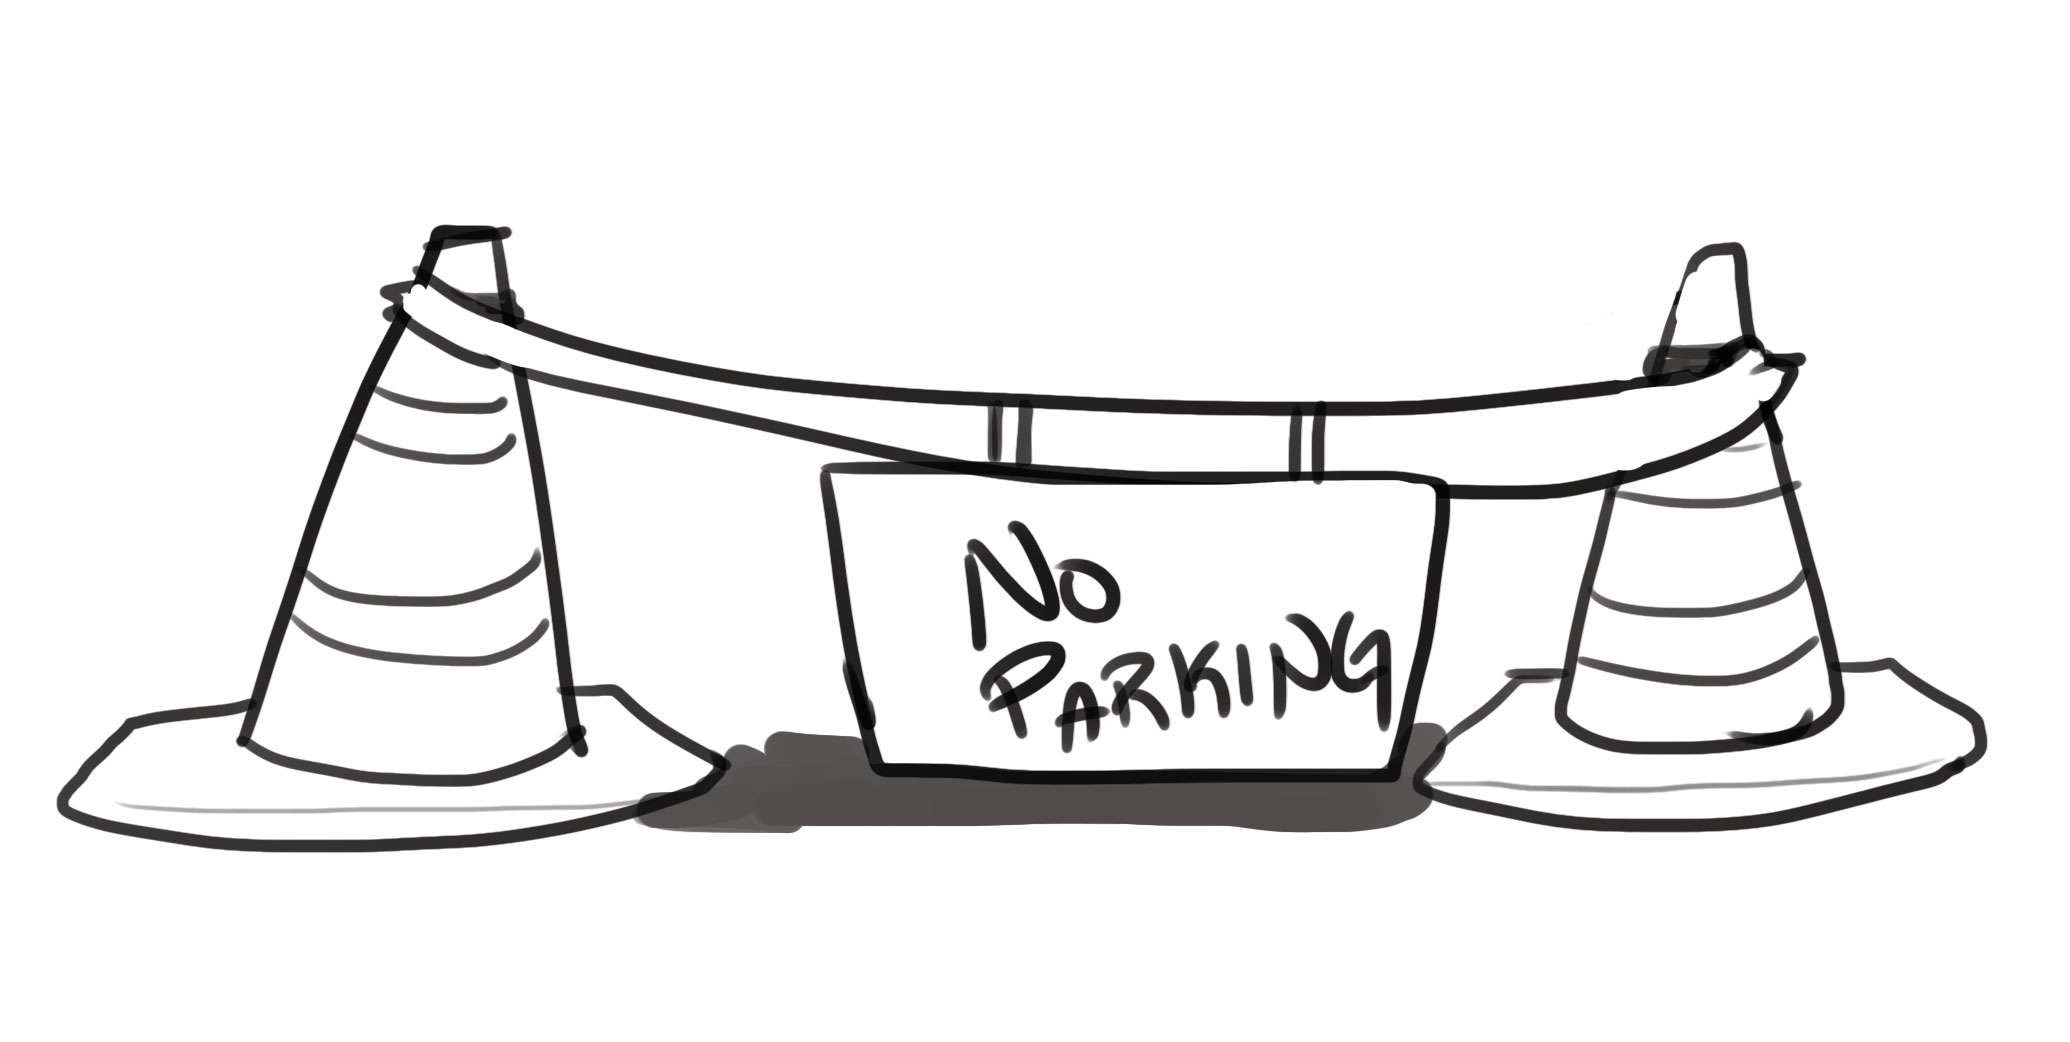 no-parking---opinion